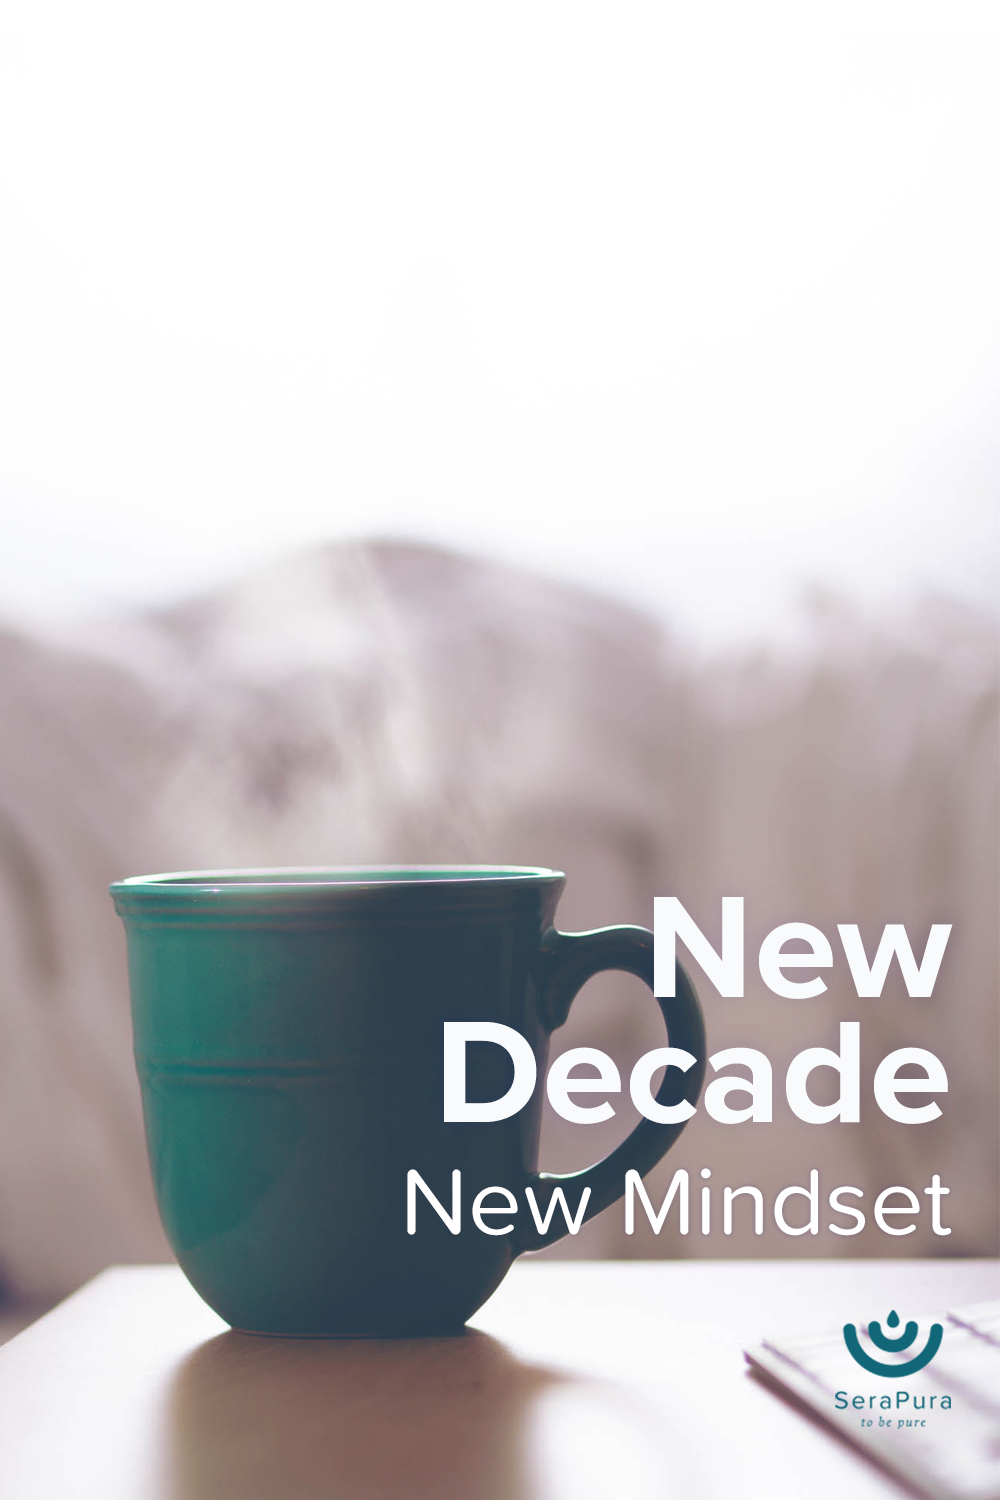 New Year. New Decade. What about a new MINDSET? - SeraPura